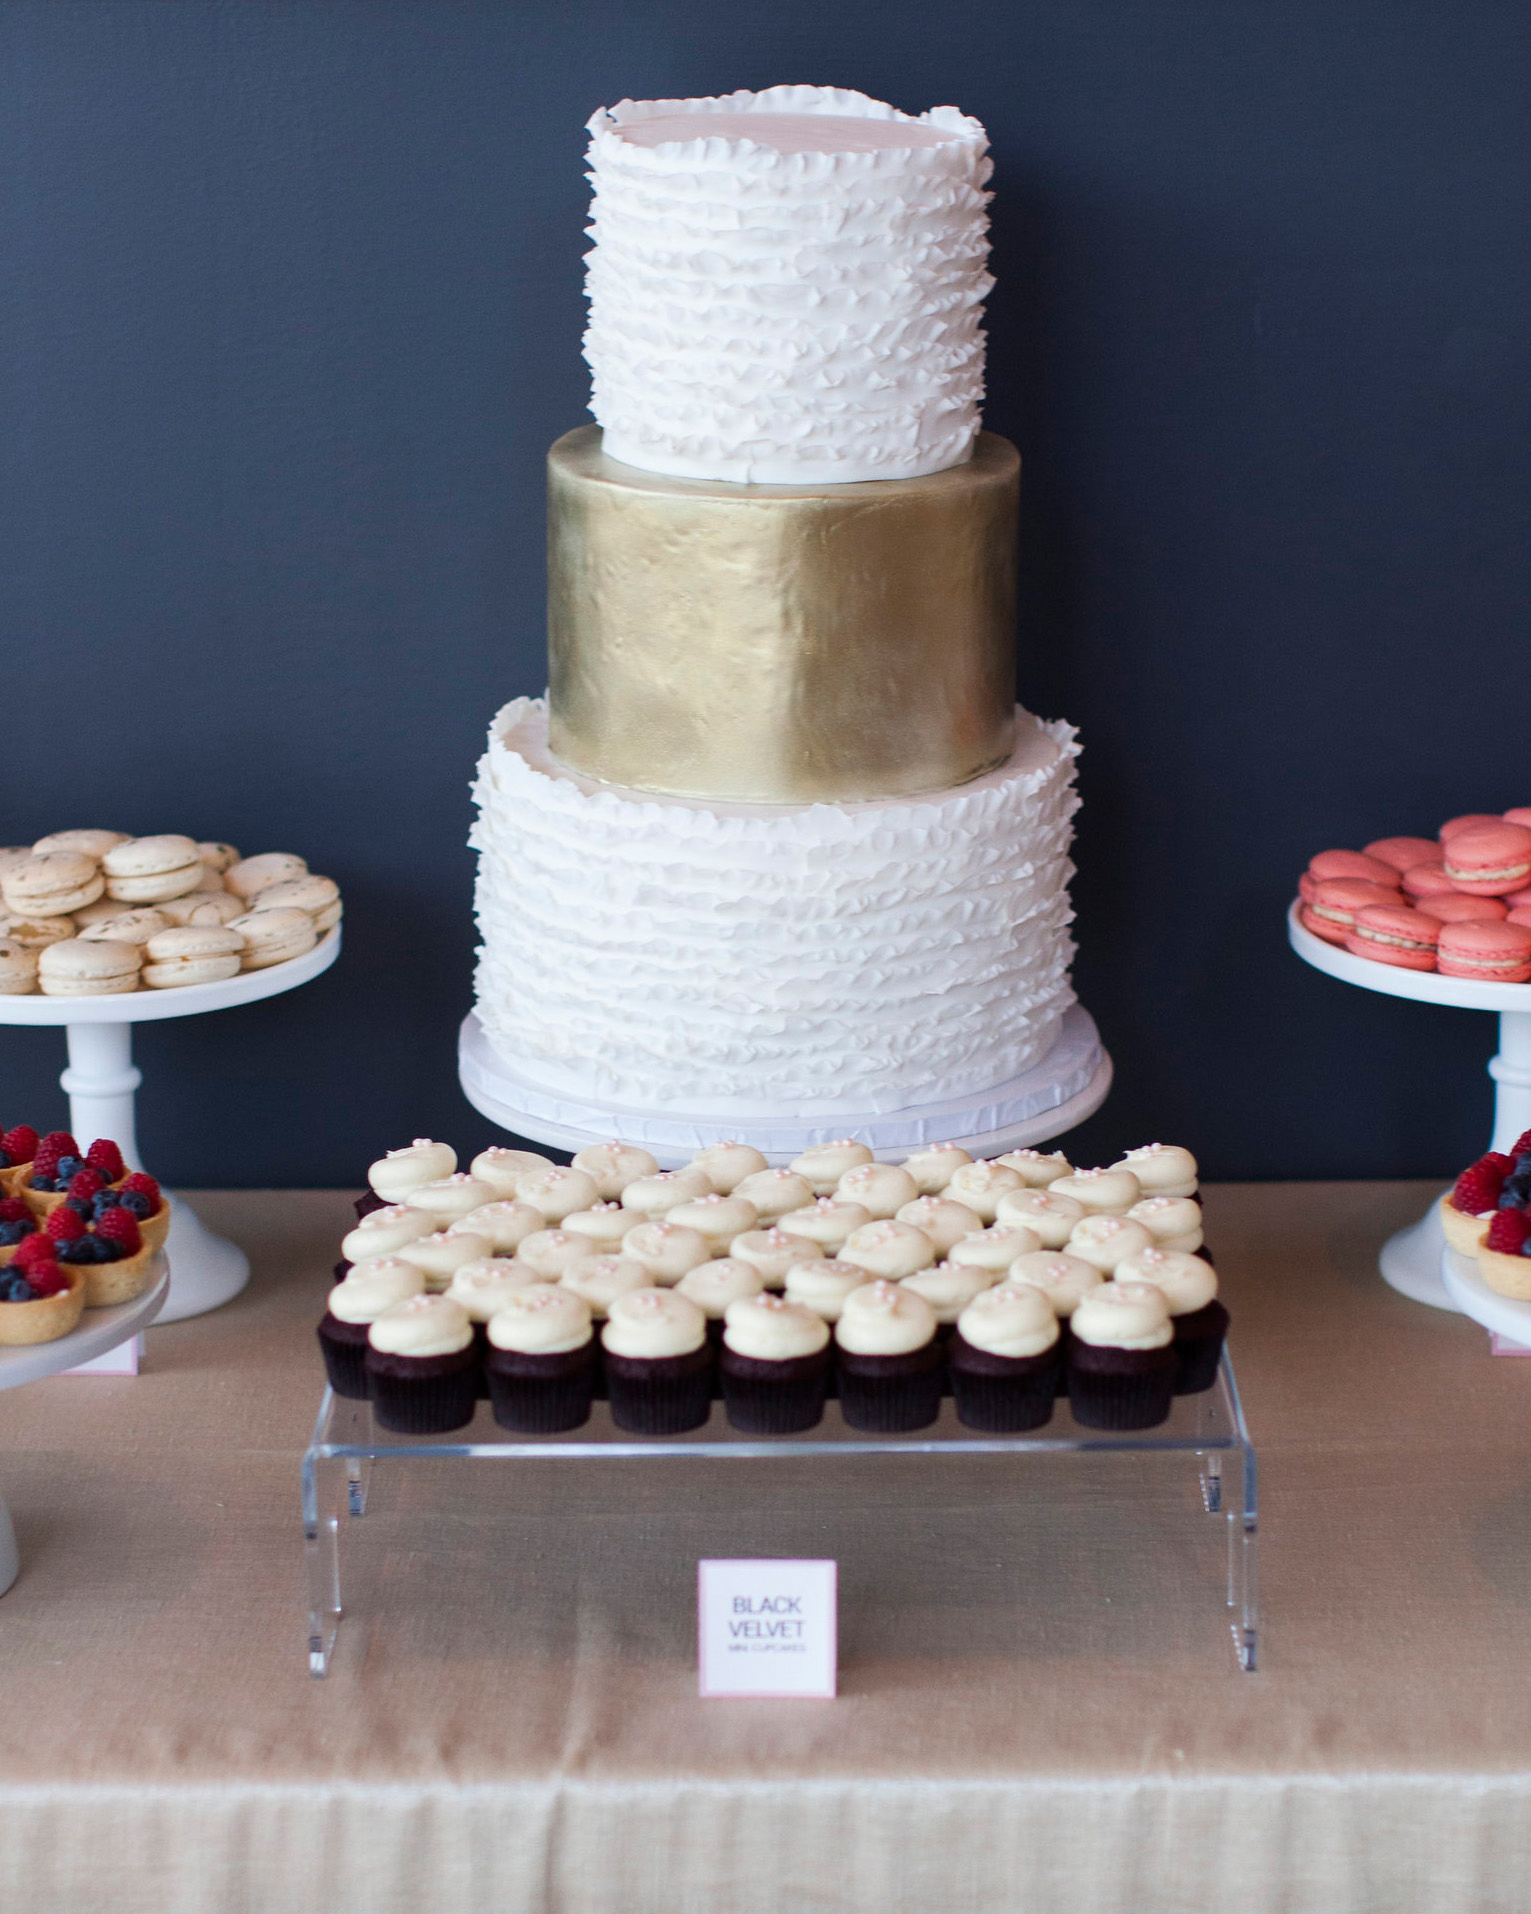 ashley-ryan-wedding-cake-6485-s111852-0415.jpg